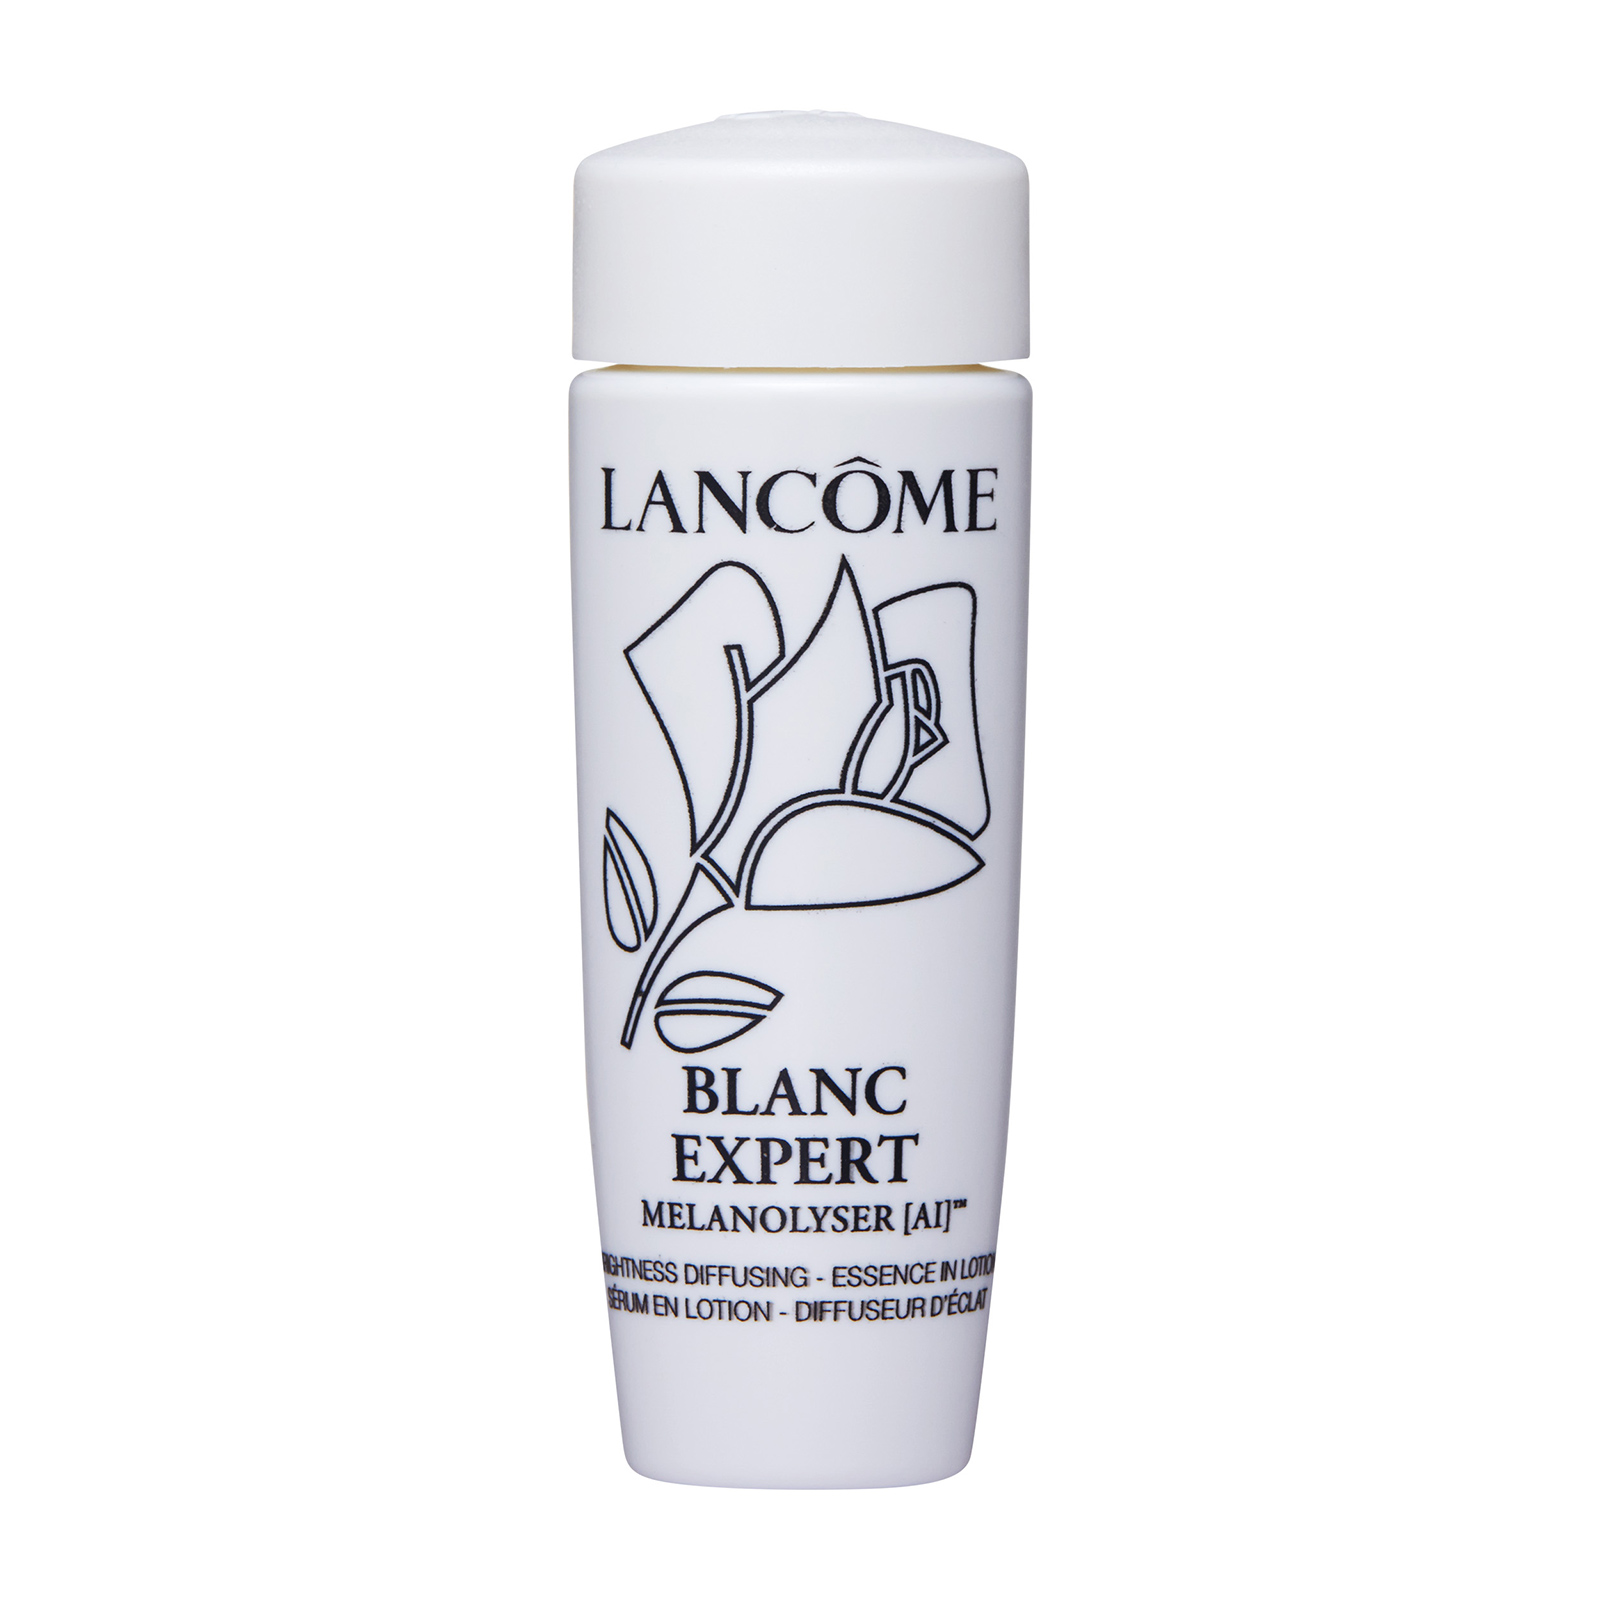 LANCÔME Blanc Expert  Melanolyser [AI]™ Brightness Diffusing Essence In Lotion 15ml (sample/ 試用裝)